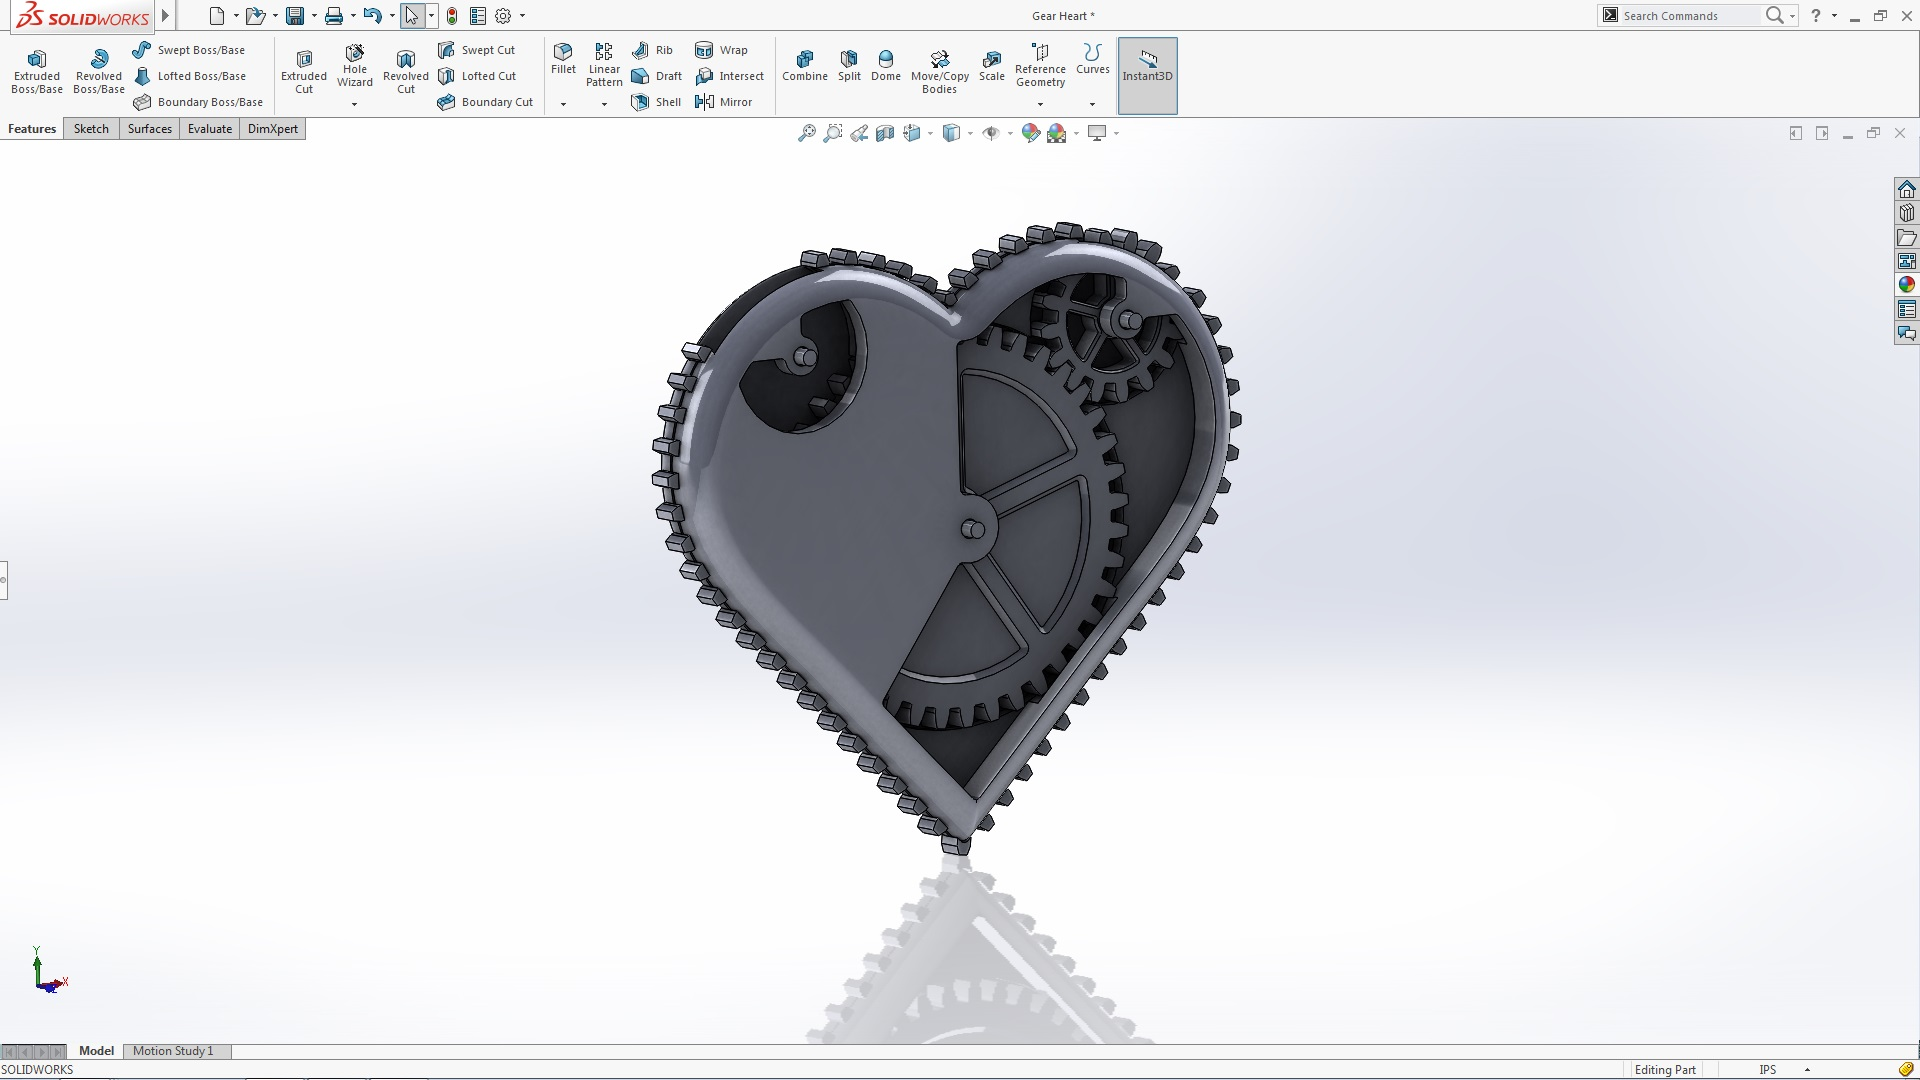 SOLIDWORKS Gear Heart Tutorial - Part 2